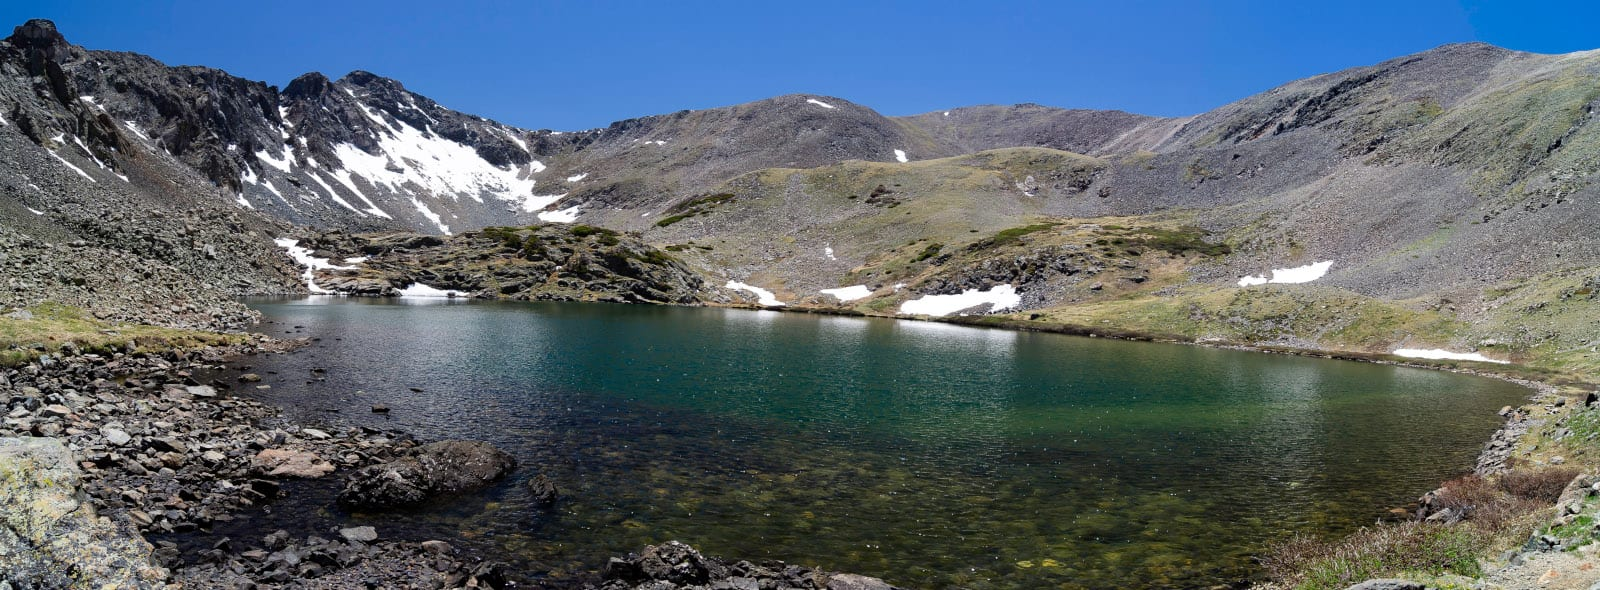 Sangre de Cristo Wilderness Stout Lake Colorado